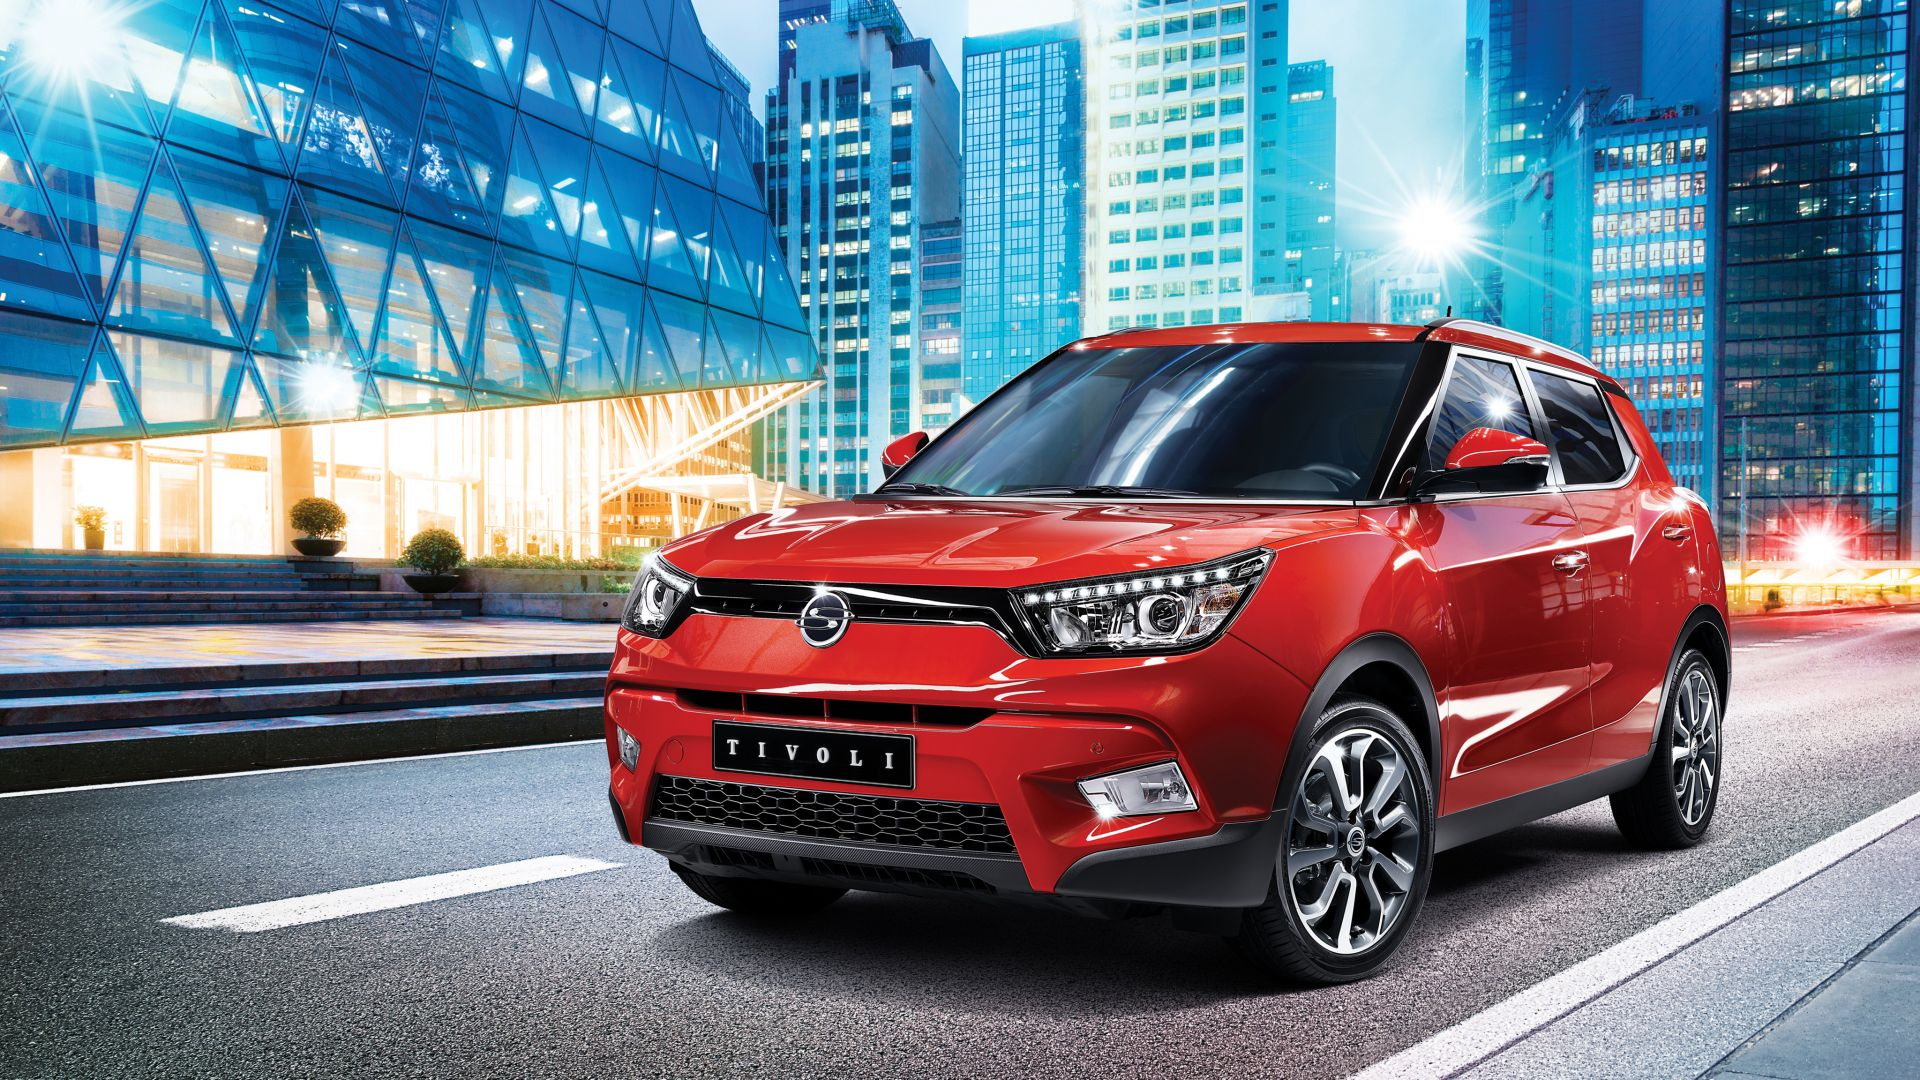 Ssangyong tivoli, crossover, red, city. (horizontal)